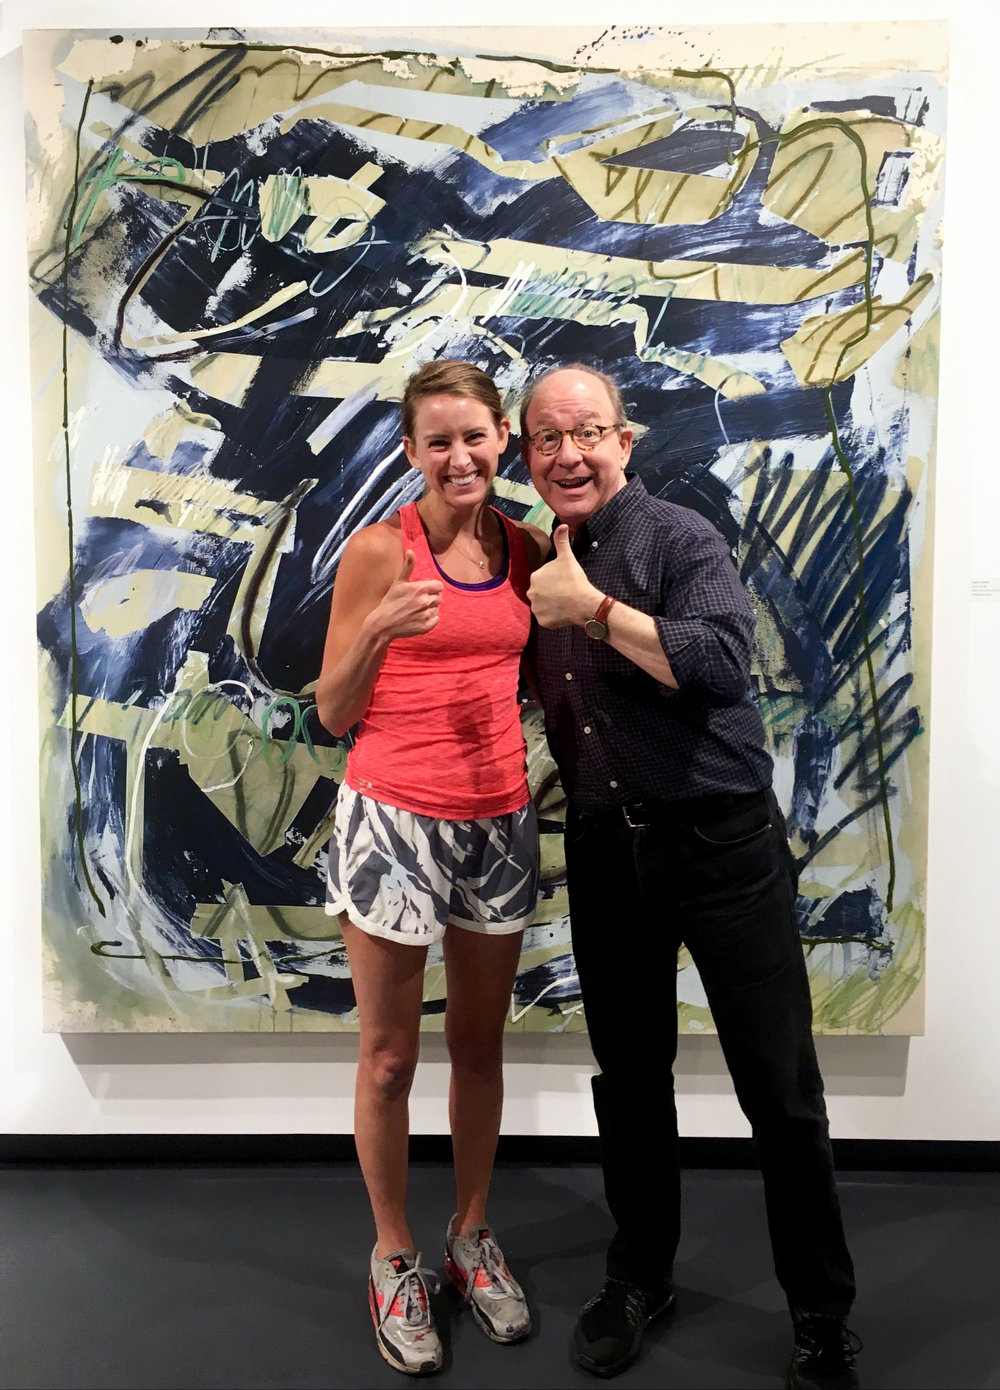 USF 41st Juried Art Exhibition - March 31 - April 14, 2017Let Her Eat Light was one of two paintings included in USF's juried exhibition at Carolyn M. Wilson Gallery during the spring of 2017. Art Critic Jerry Saltz even got to swing by and view the works, giving the show a thumbs up before heading back to NYC.